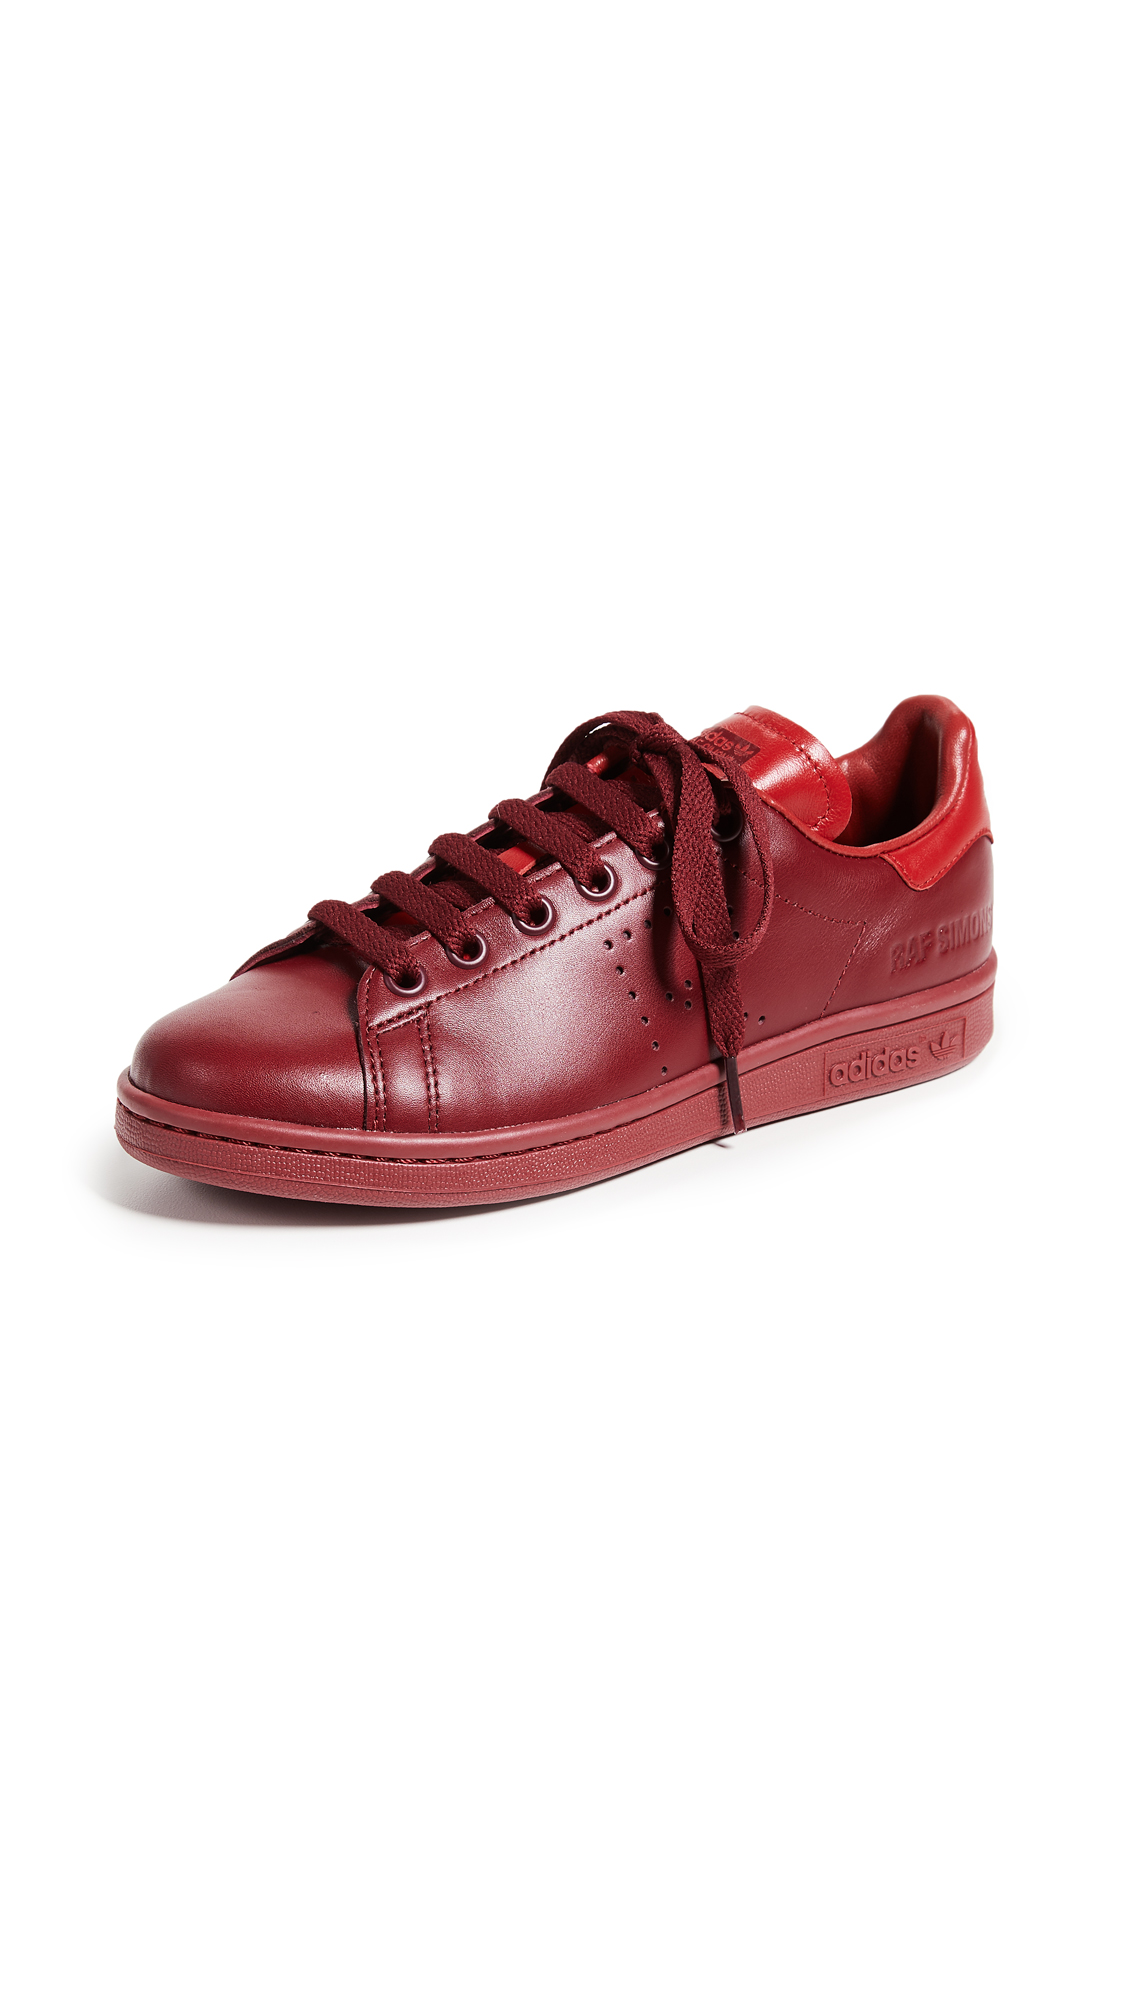 on sale 79cc4 5729d Adidas Originals Raf Simons Stan Smith Sneakers In Burgundy Power Red